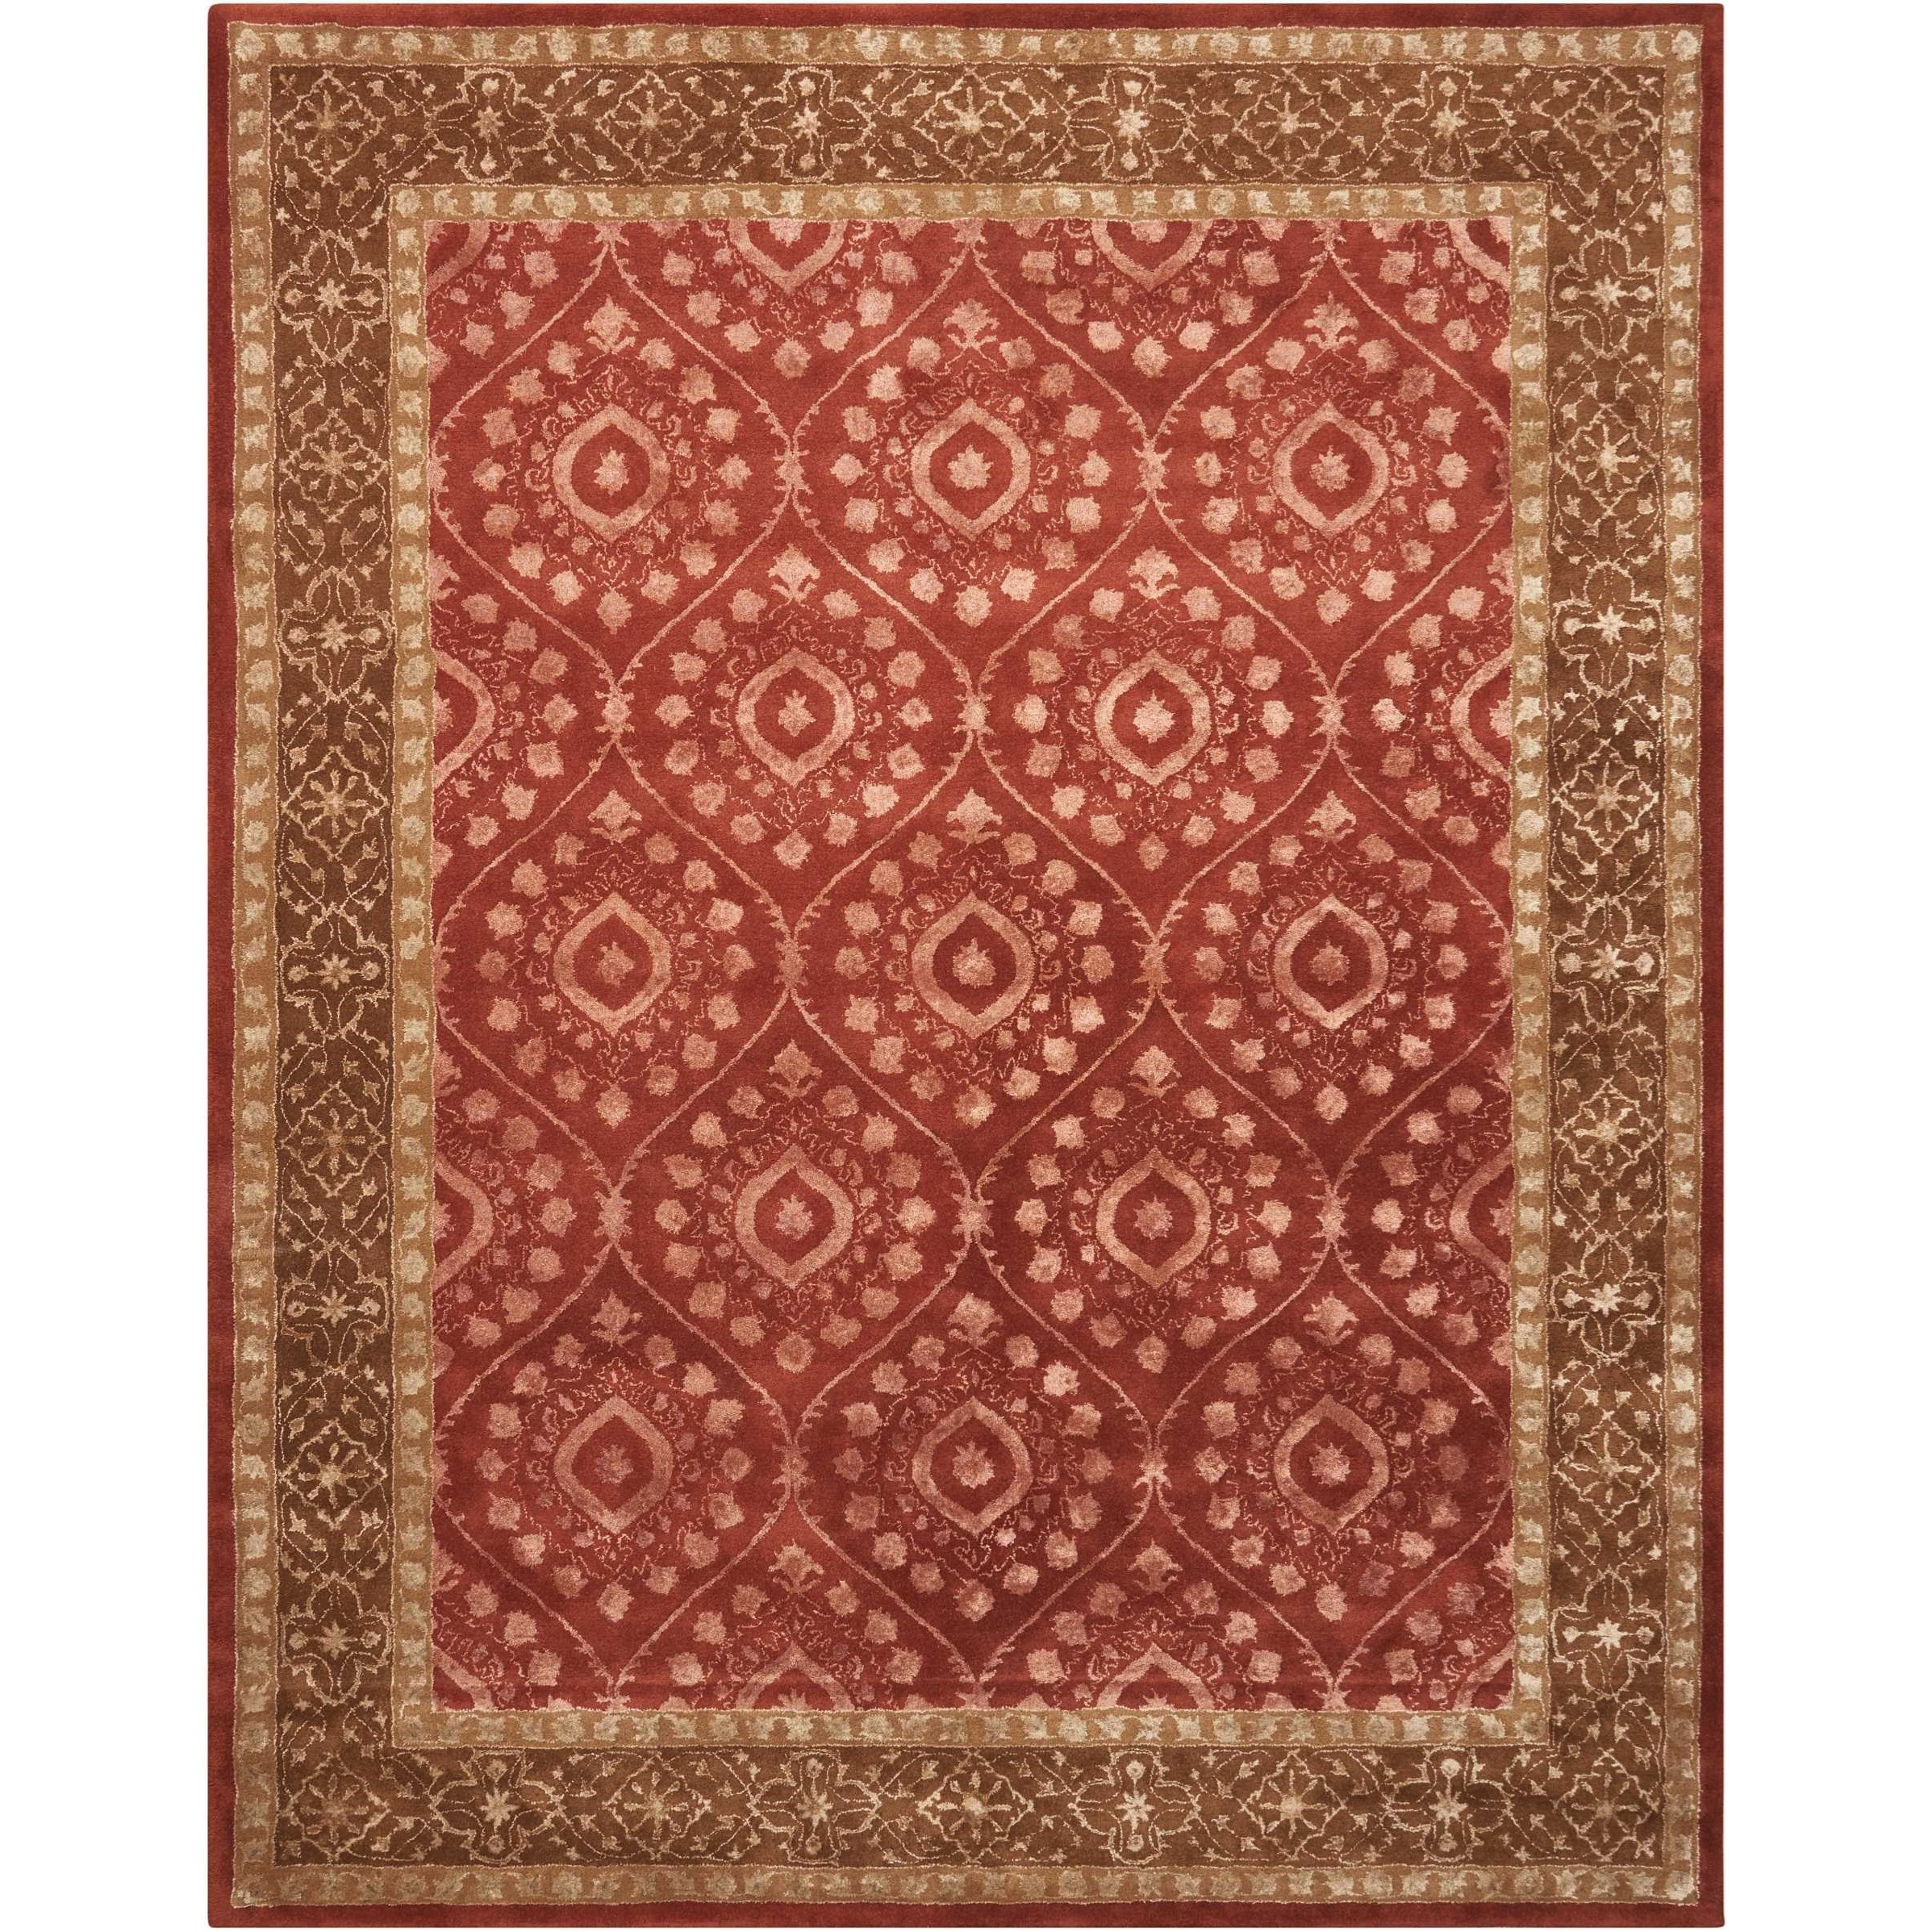 8' x 11' Ruby Rectangle Rug